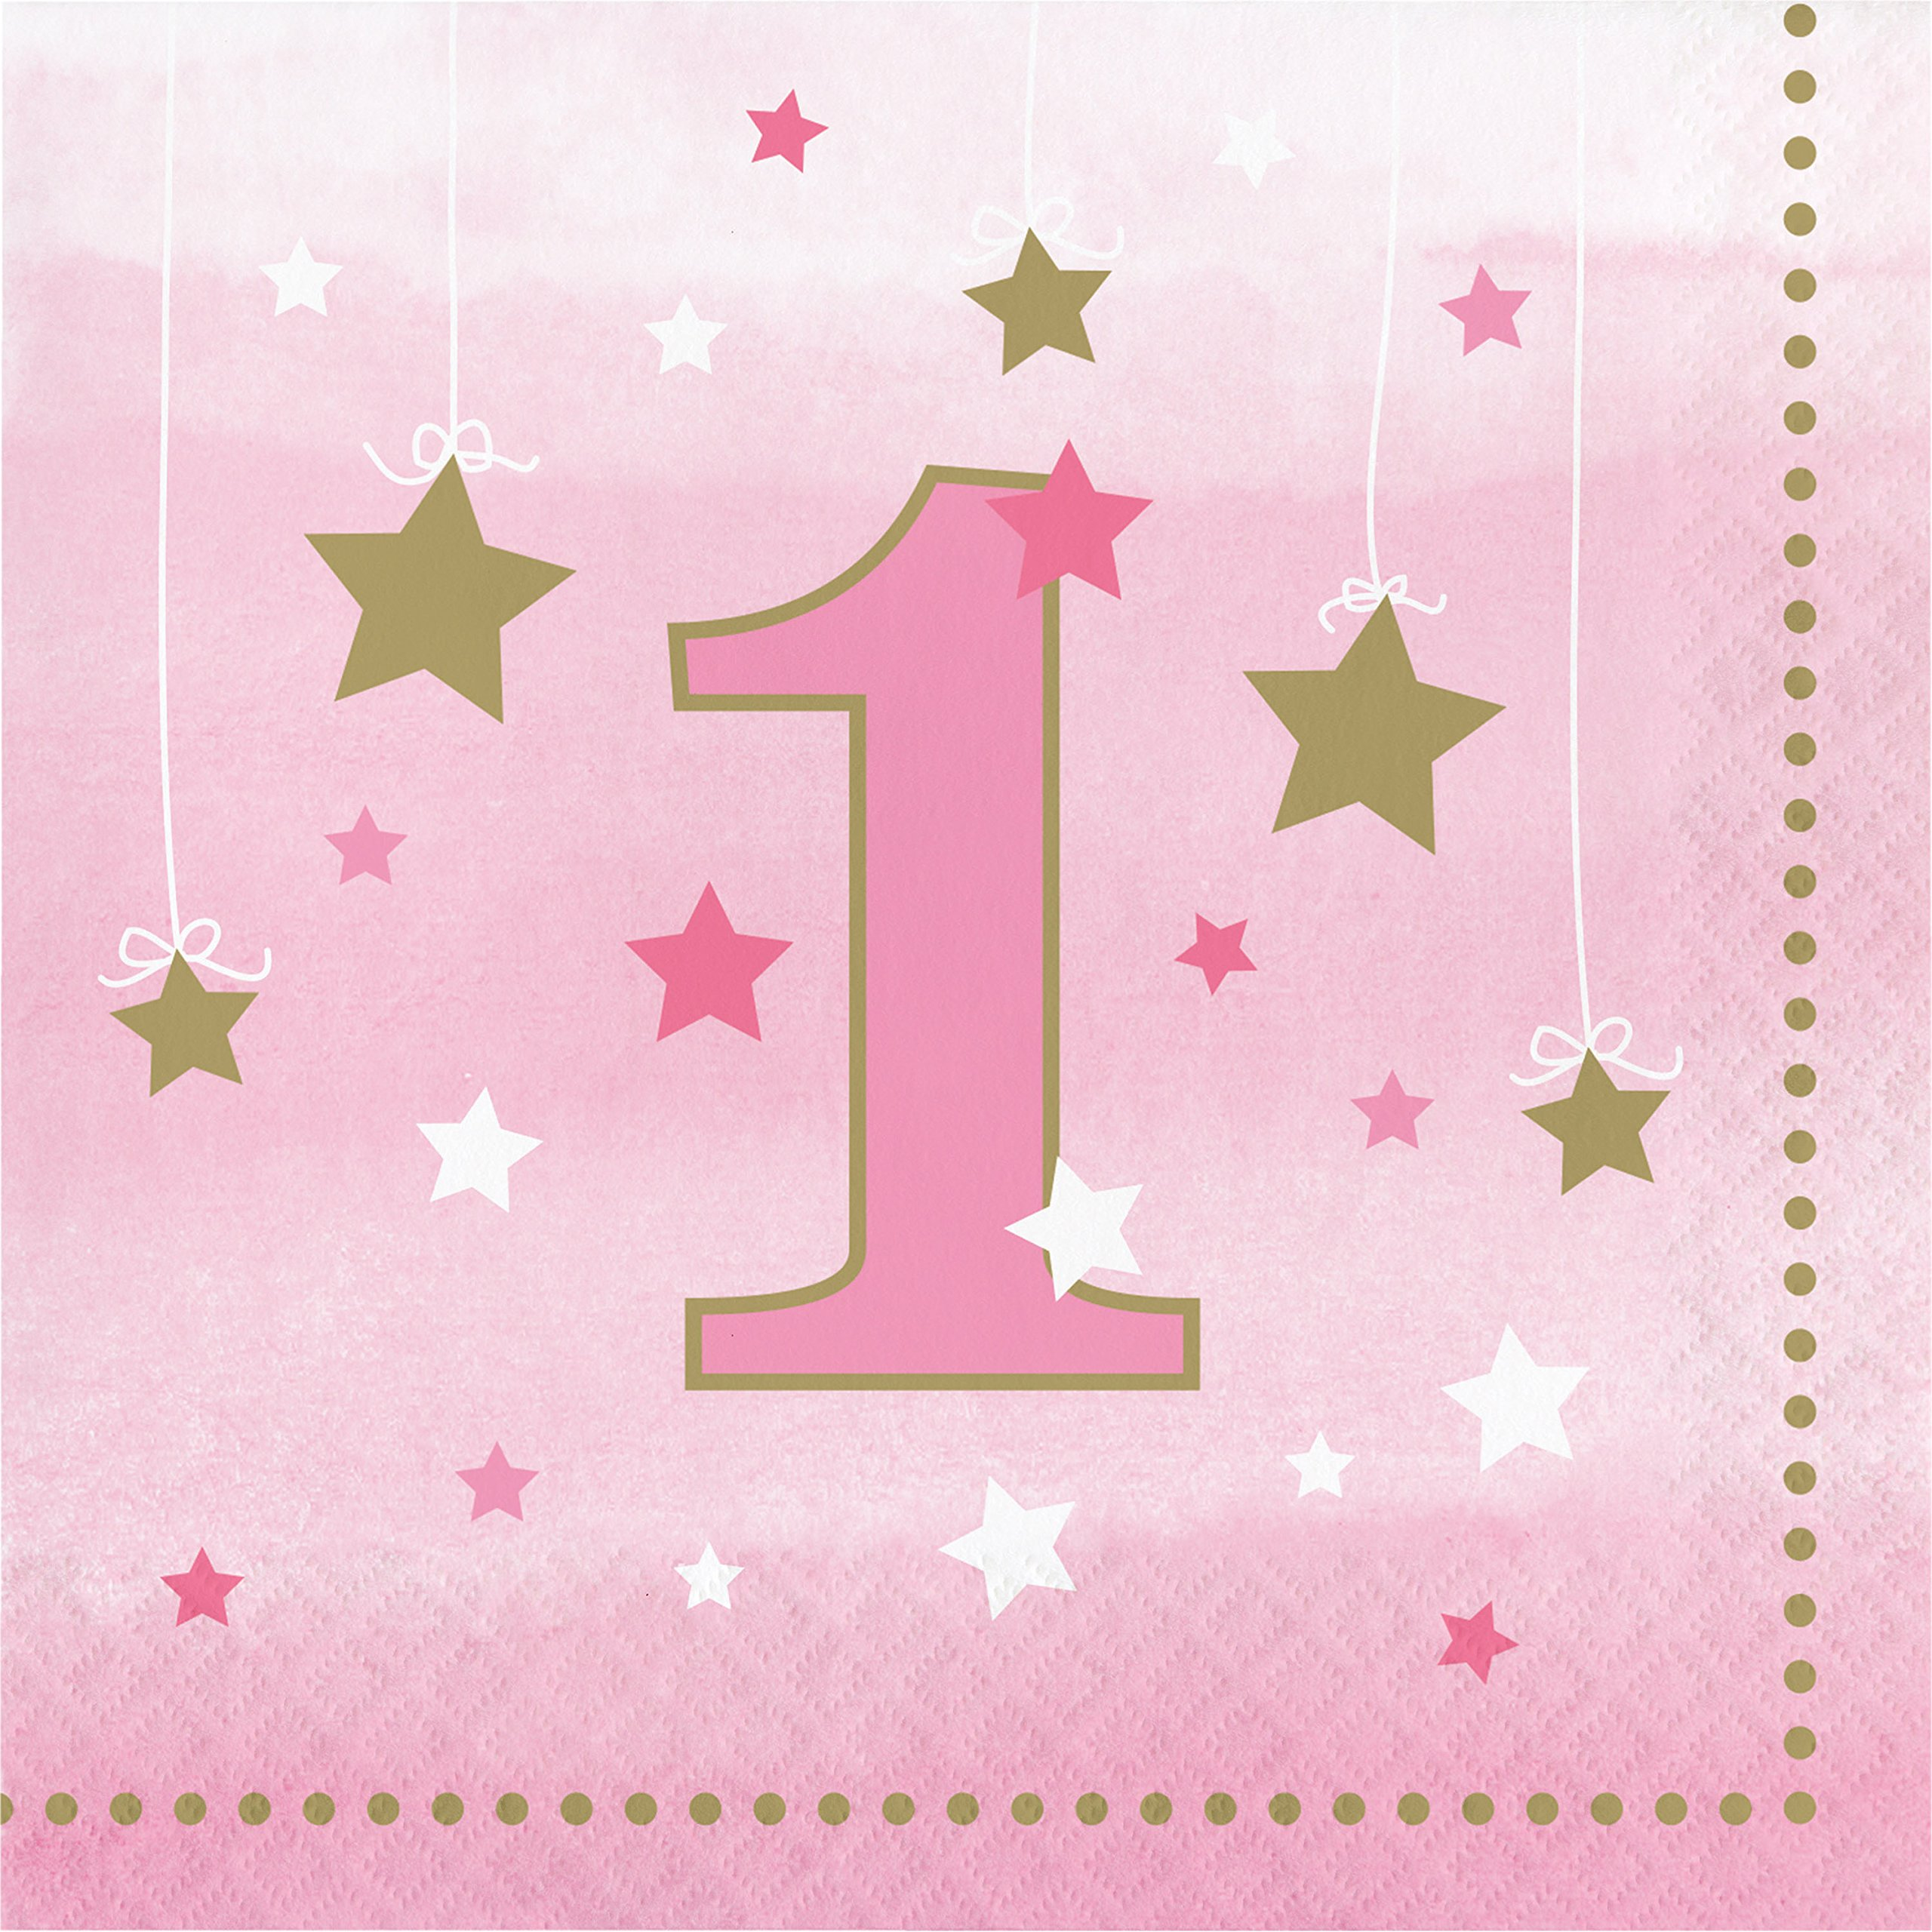 One Little Star Girl 1st Birthday Napkins, 48 ct by Creative Converting